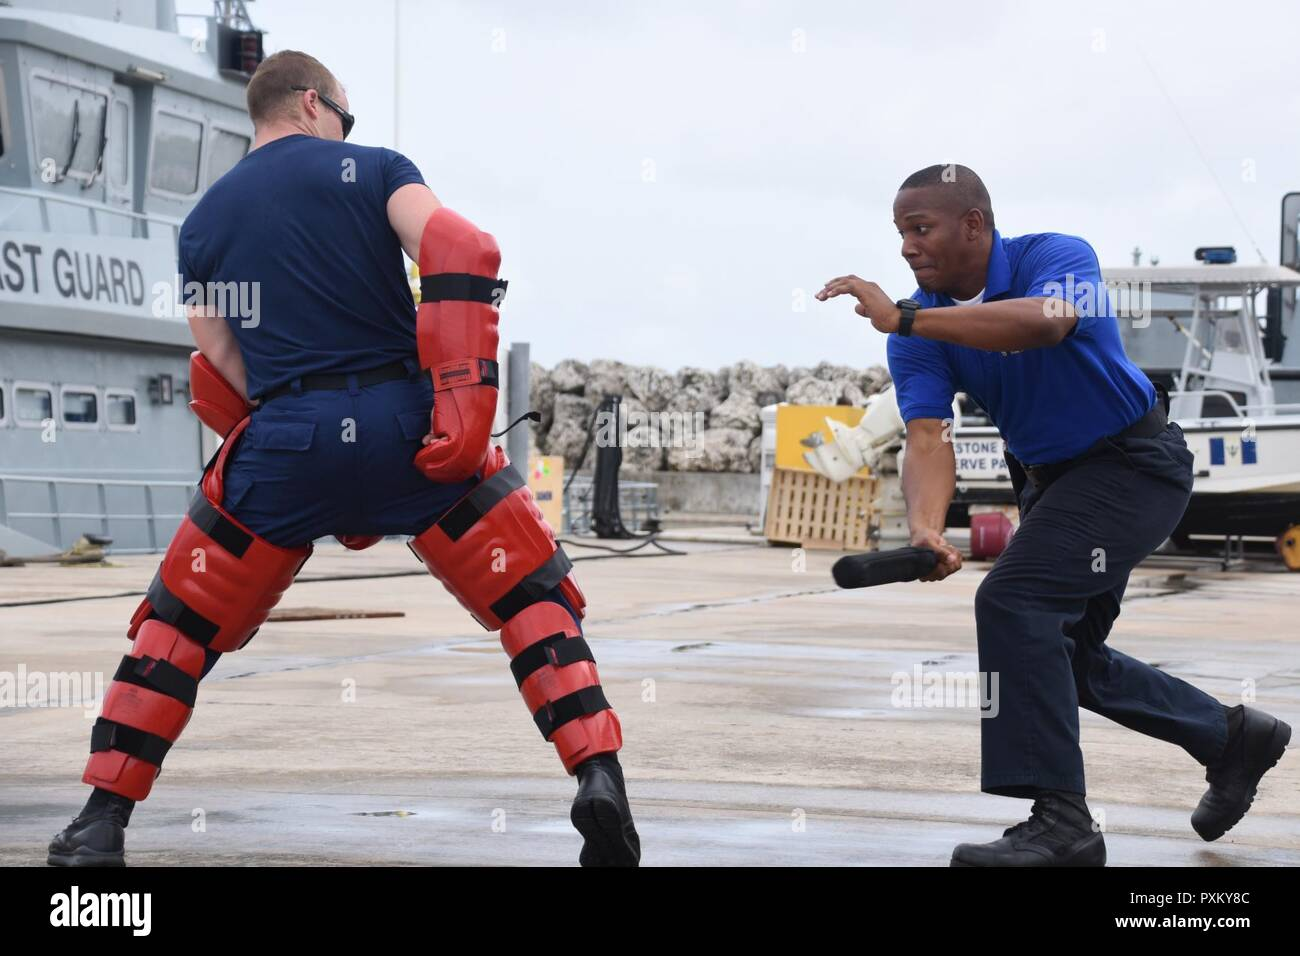 Steven Celestine, a member of the Commonwealth of Dominica Coast Guard, practices law enforcement techniques during Exercise Tradewinds 2017 at the Barbados Coast Guard Base in Bridgetown, Barbados, June 9, 2017. Tradewinds 2017 is a joint, combined exercise conducted in conjunction with partner nations to enhance the collective abilities of defense forces and constabularies to counter transnational organized crime, and to conduct humanitarian/disaster relief operations. - Stock Image